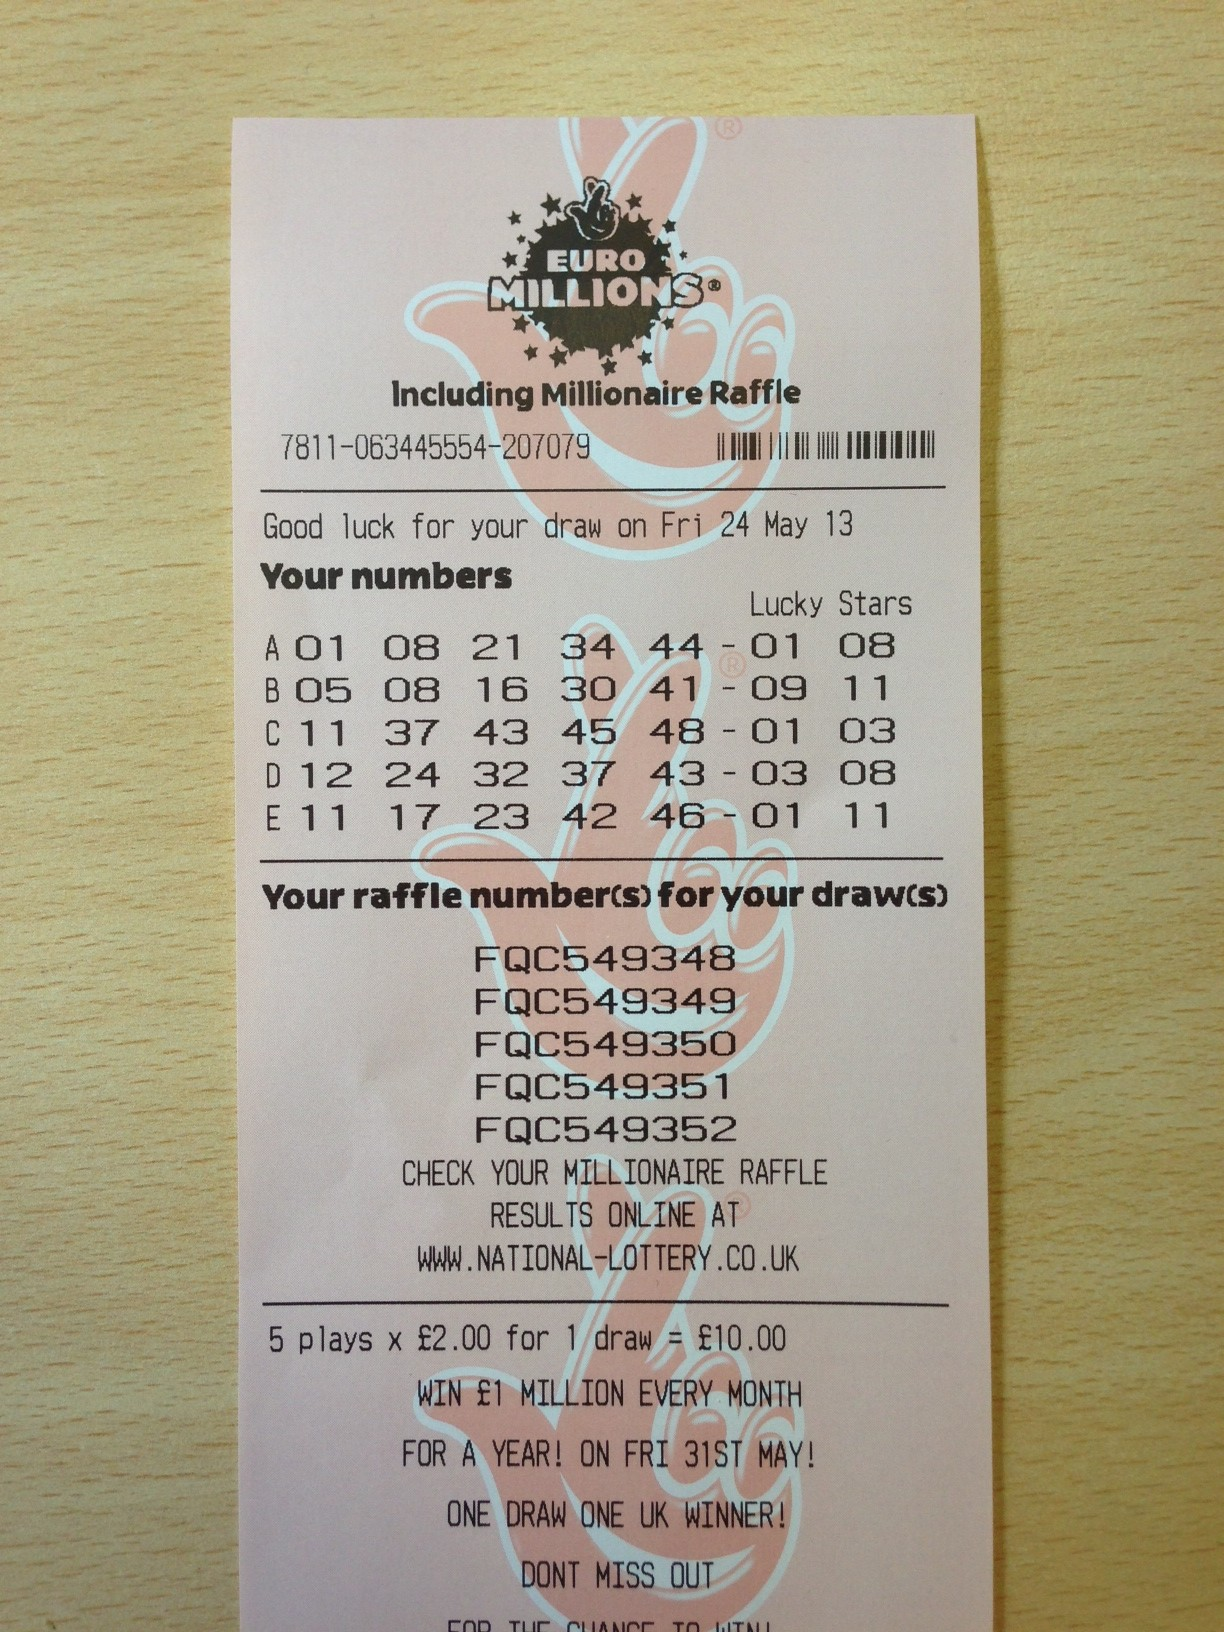 Euro Millions Friday's Draw – 24.05.13.